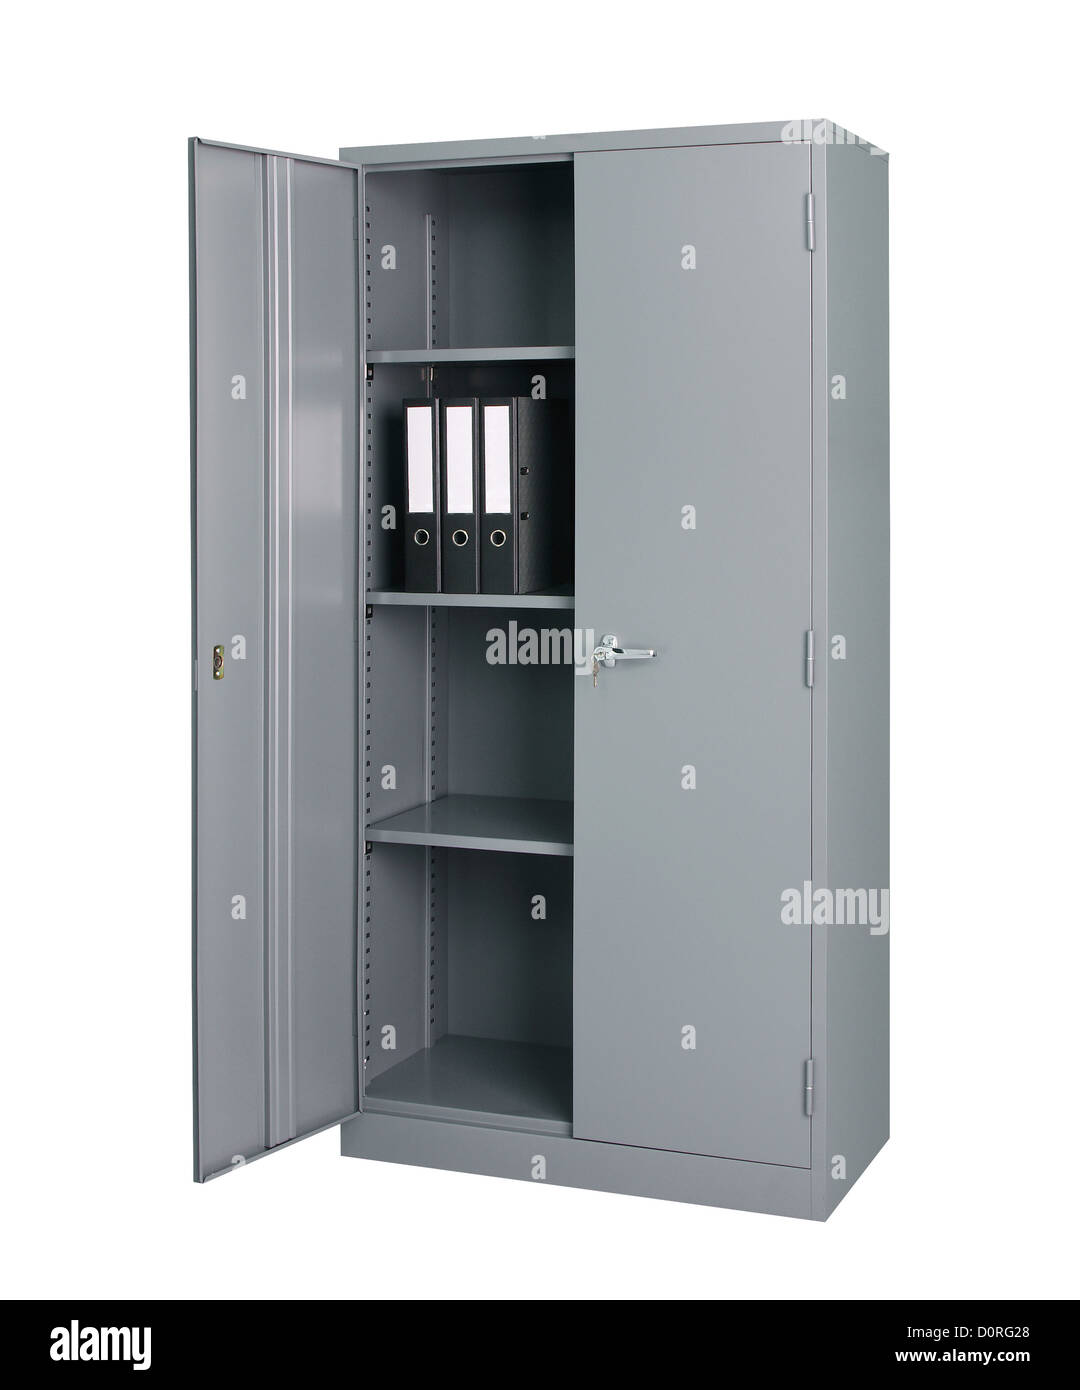 Factory De Muebles Steel Cabinet For Factory School Gyms Or Office Furniture Stock